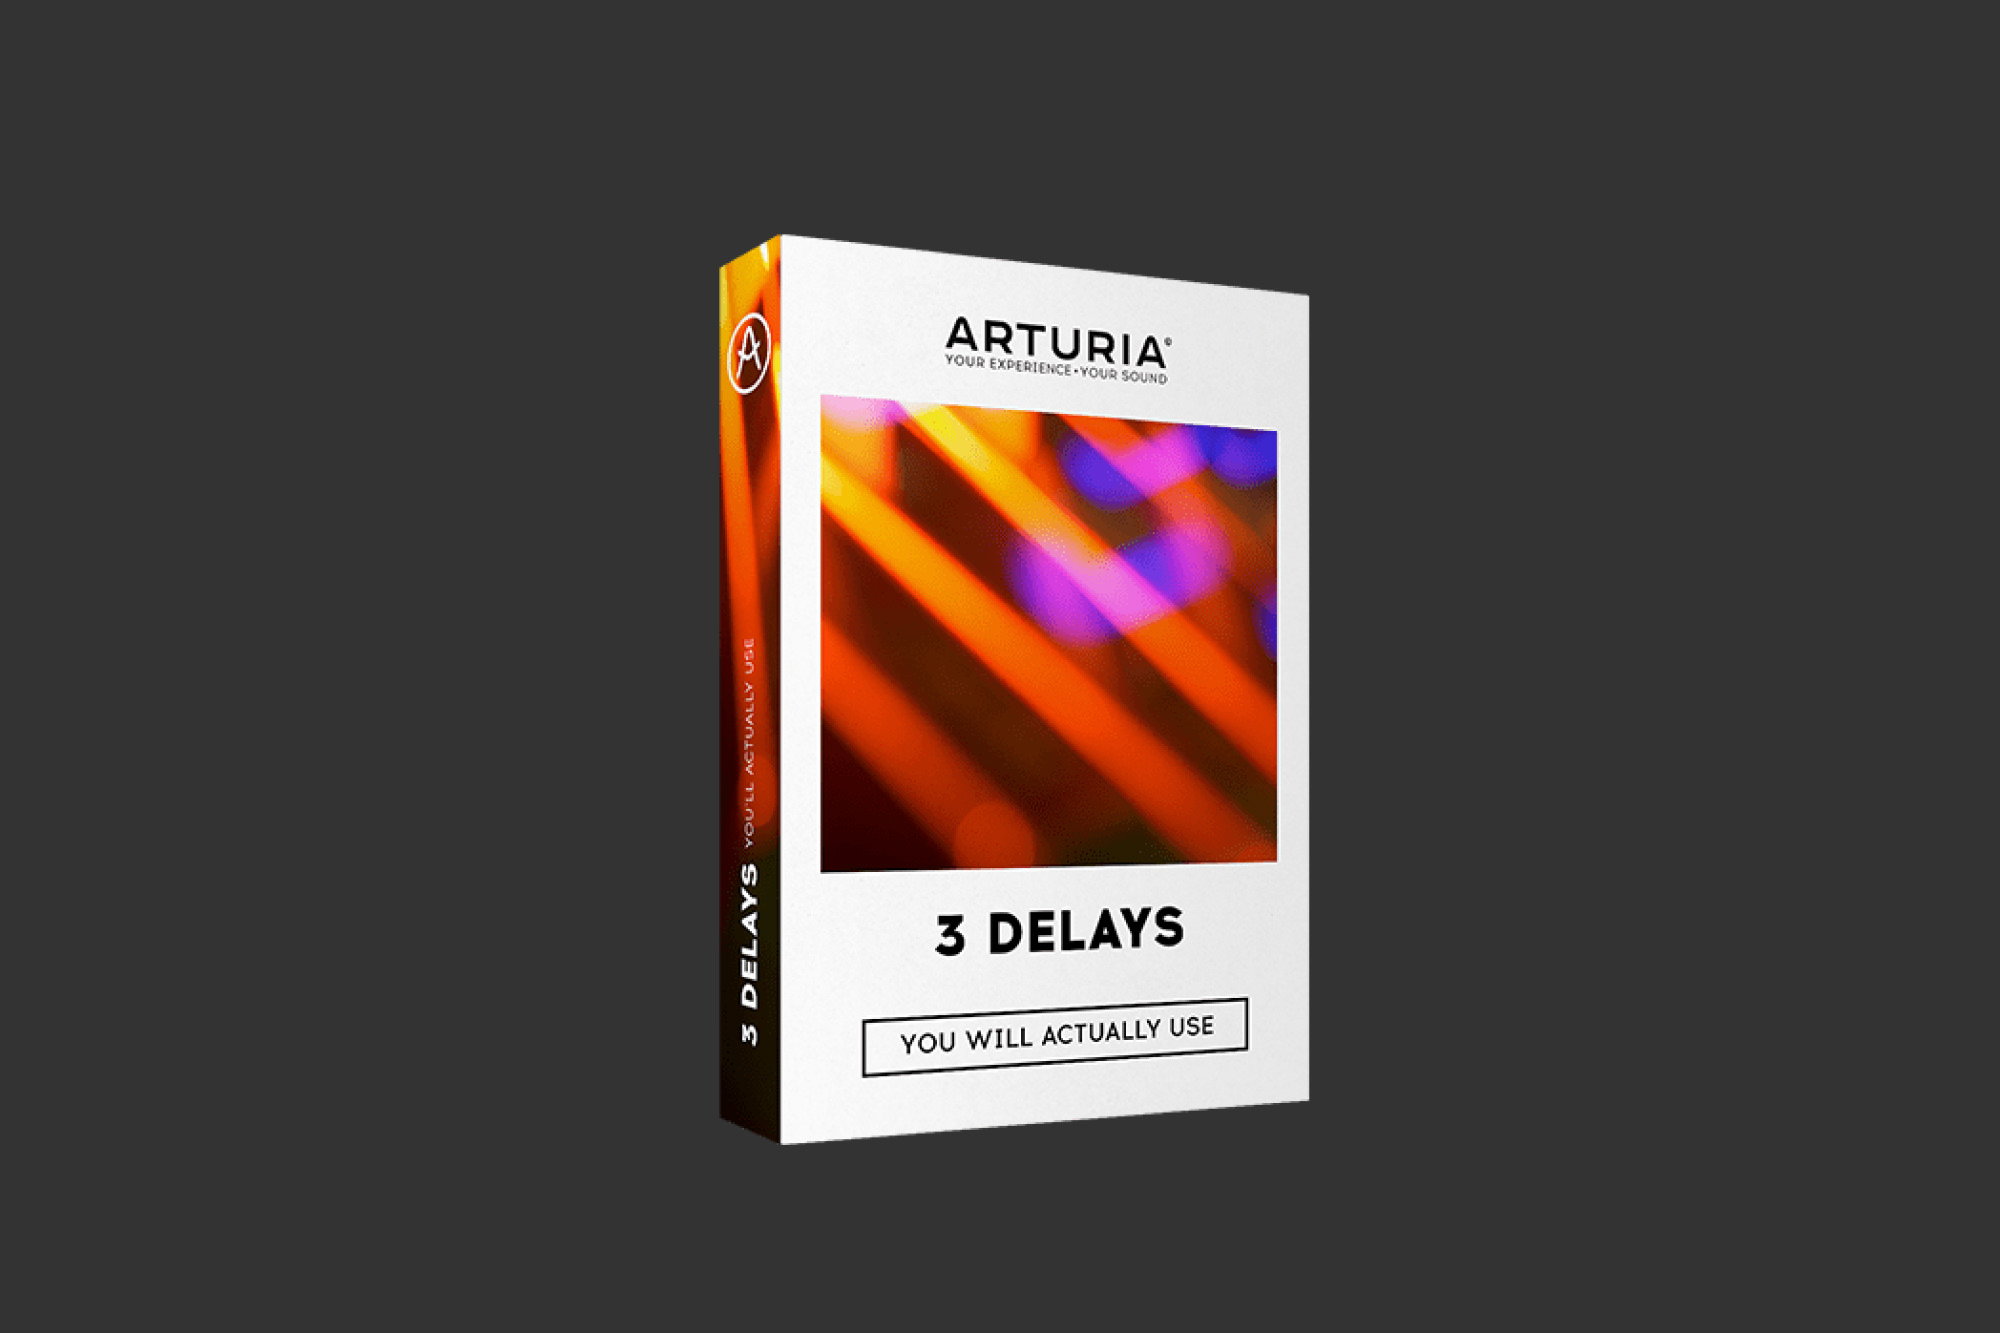 An image of the Arturia 3 Delays.